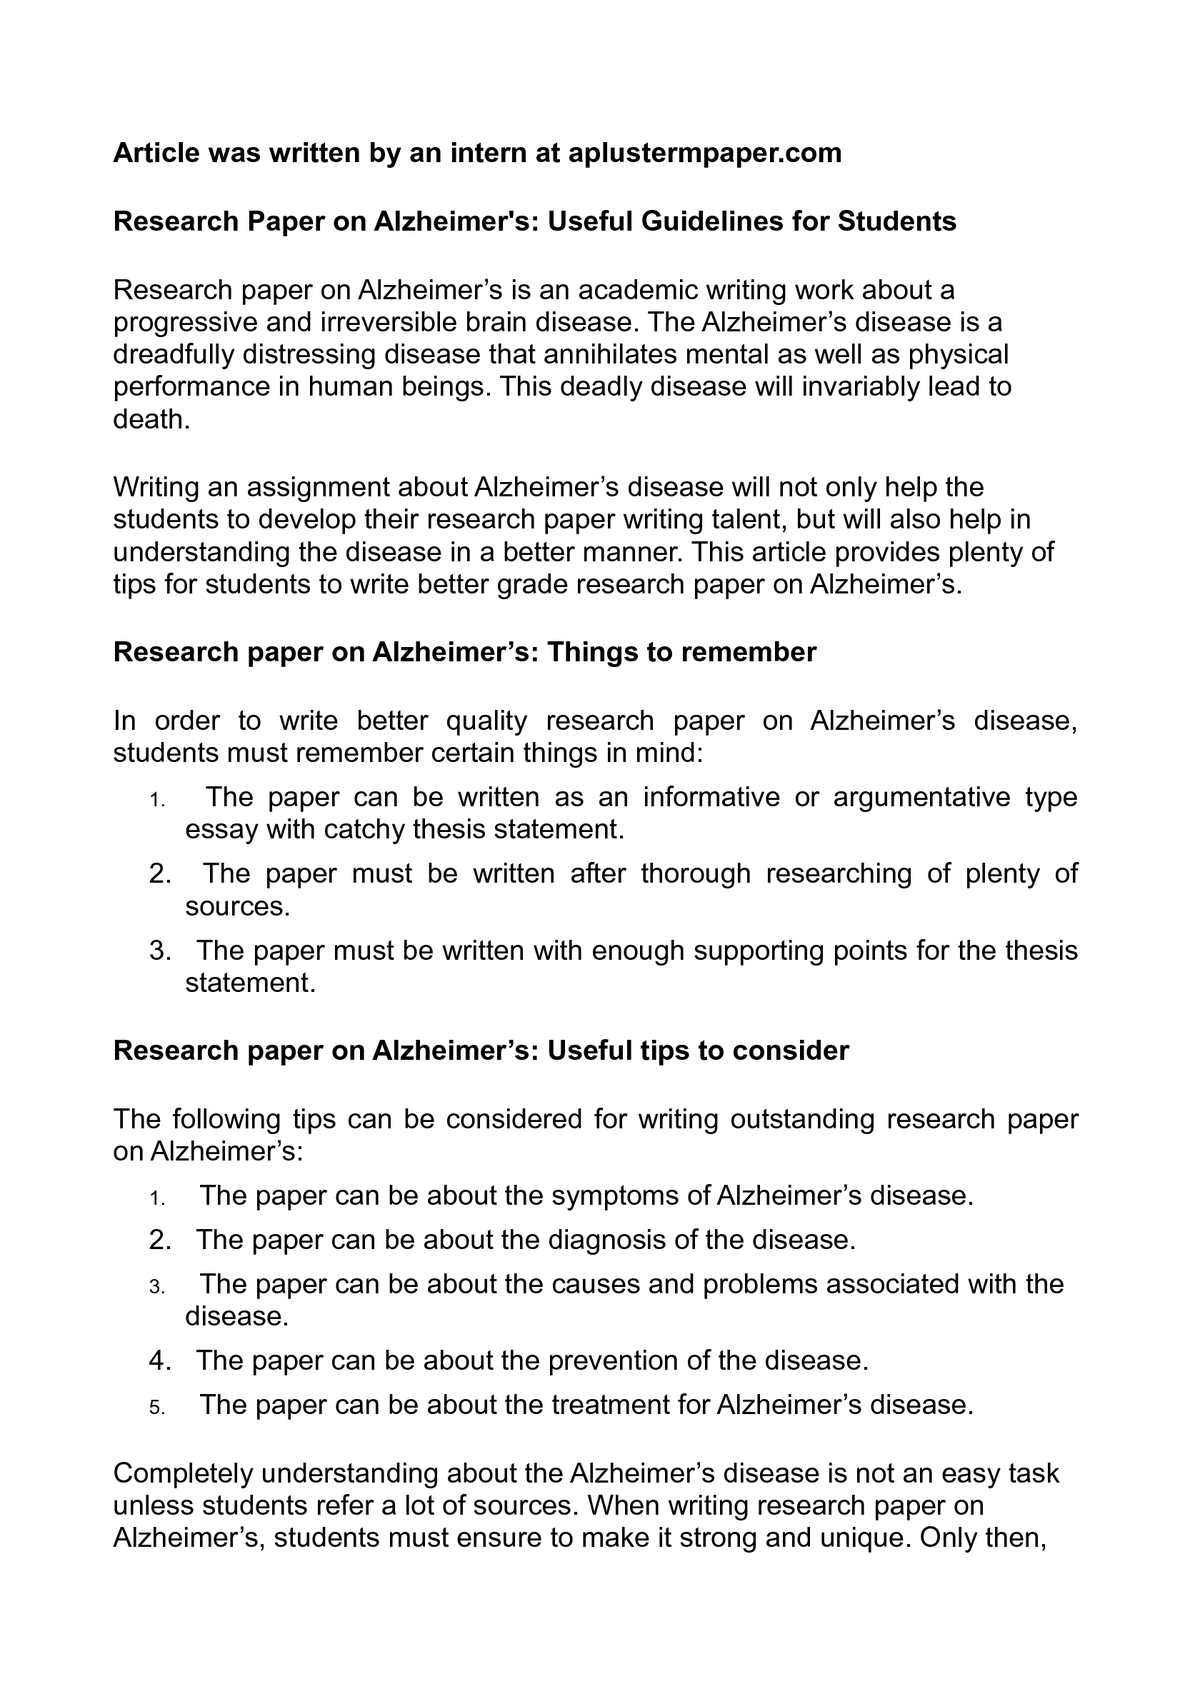 Thesis on alzheimer's disease